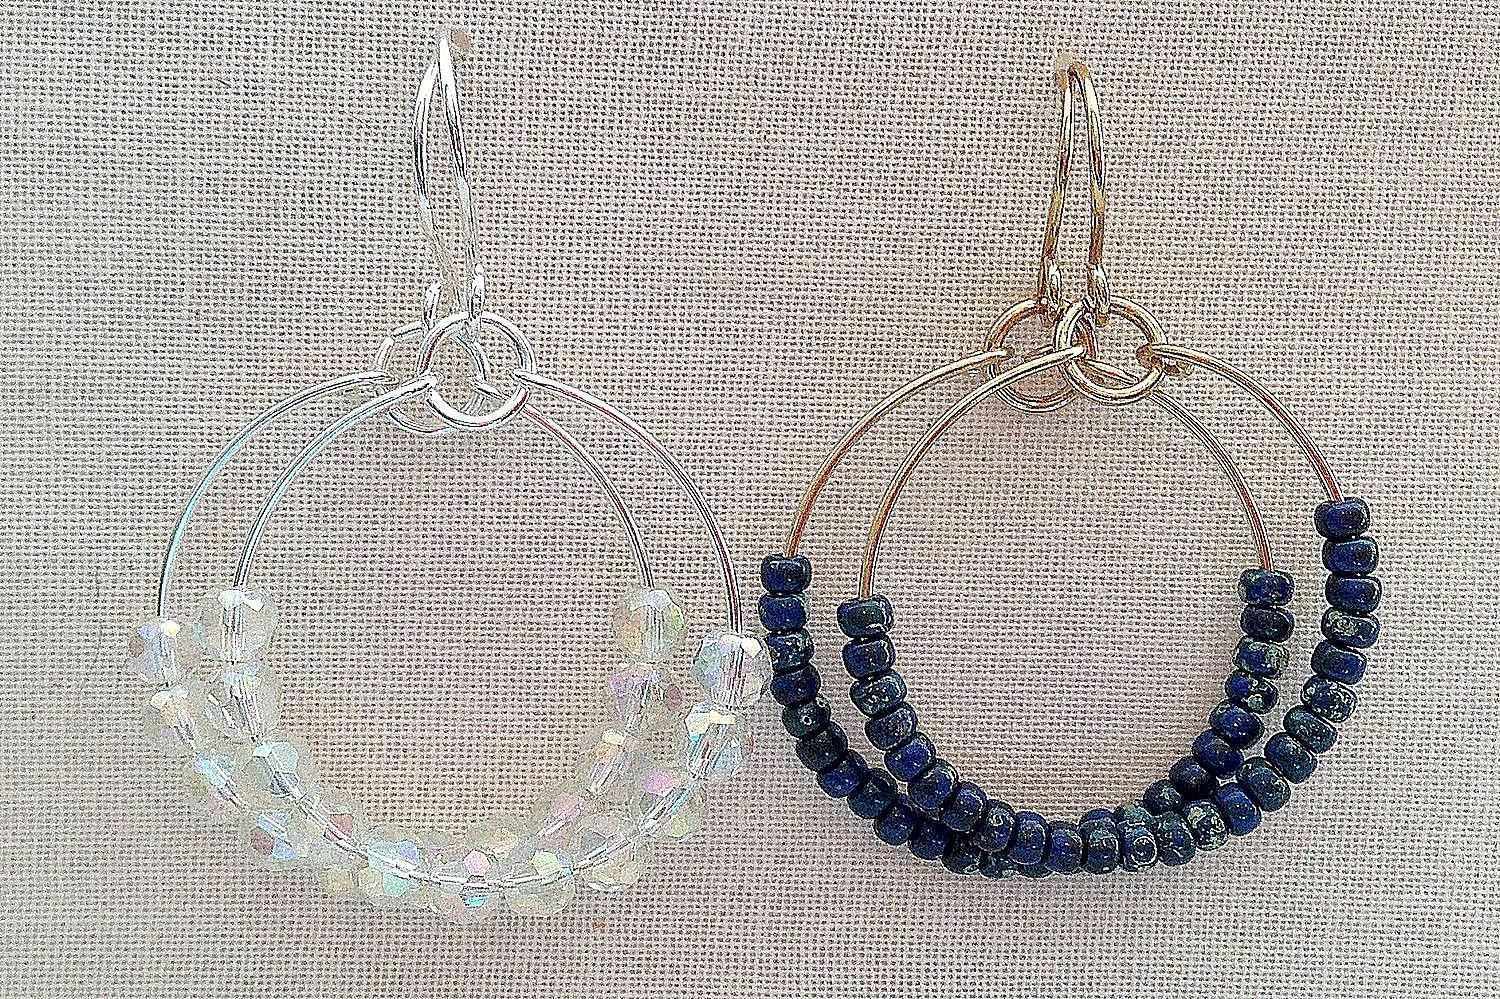 Easy to Make Wire and Bead Hoop Earrings | Beads